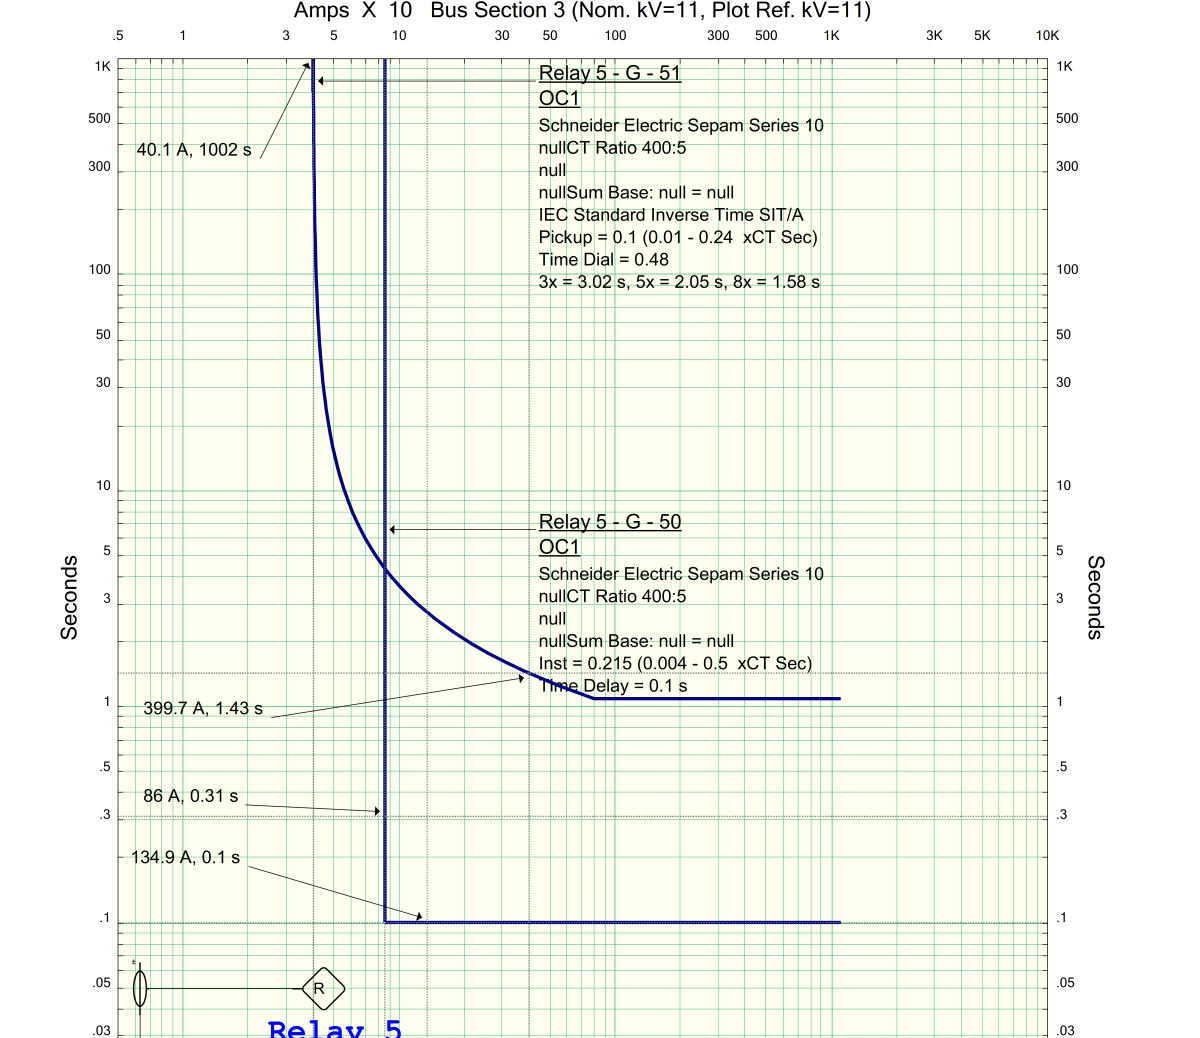 Typical standard inverse definite-time curve for the example earth fault relay settings demonstrated. The inverse definite part and the instantaneous parts of the curve are not integrated.